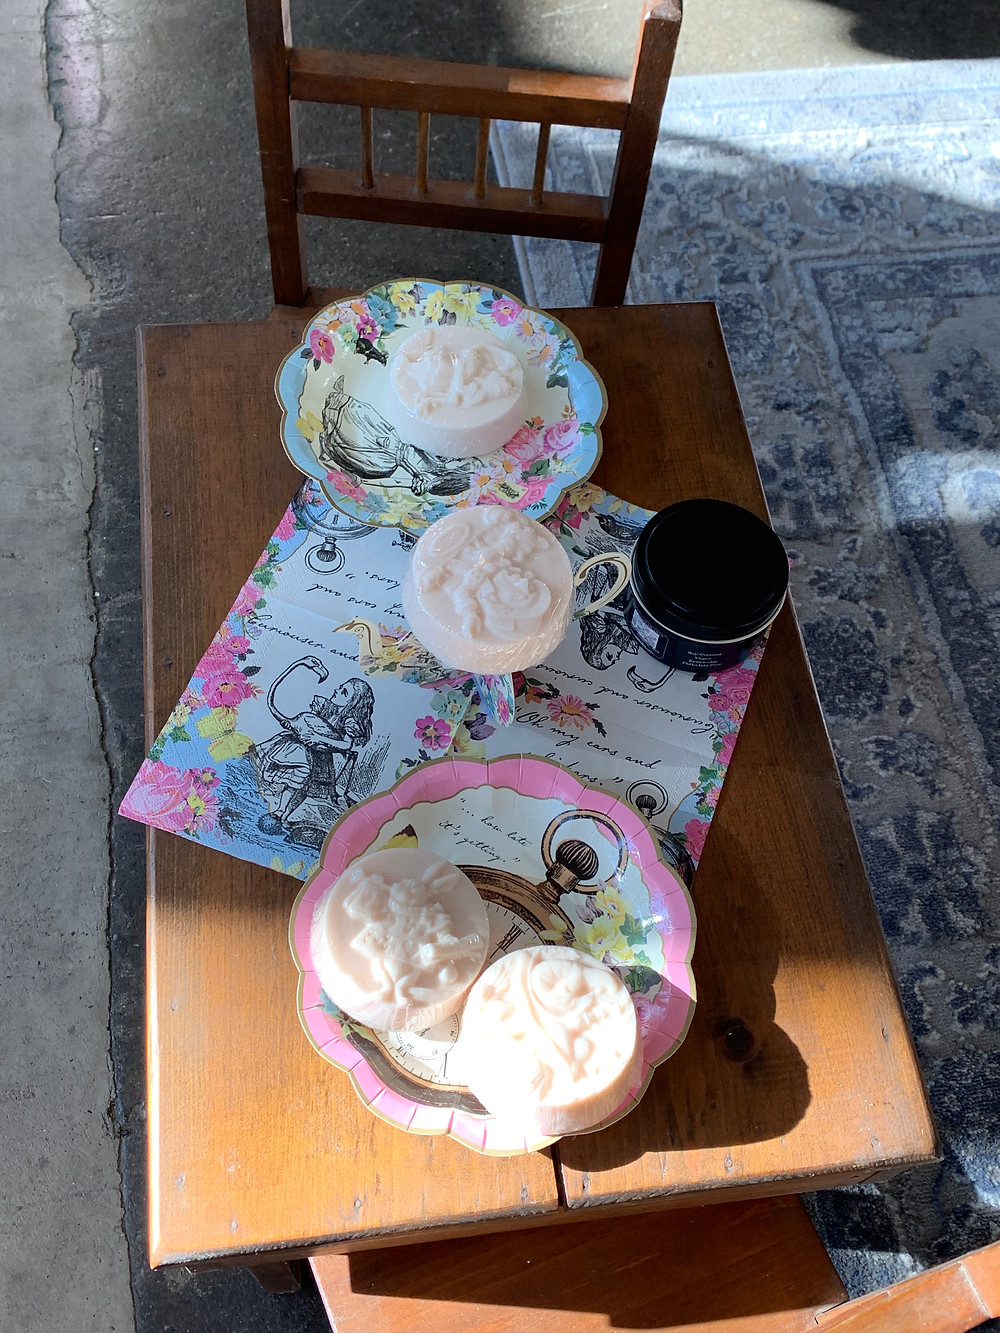 Alice tea party set up with Queen of Hearts candles and White Tea soap